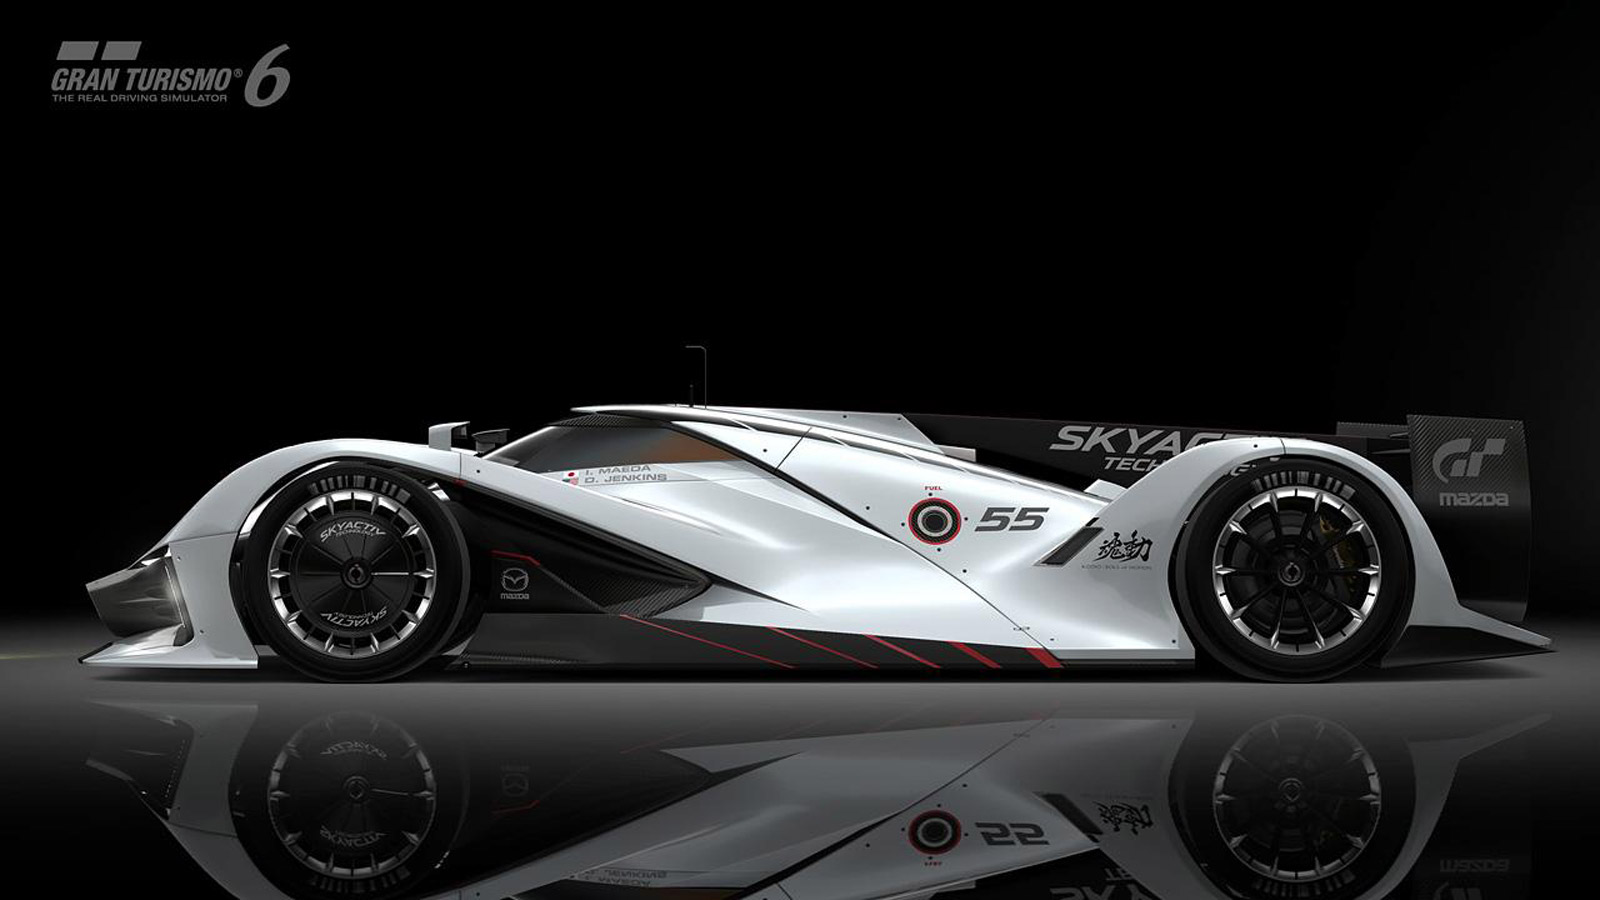 Image courtesy Mazda Motor Corporation/Sony Computer Entertainment